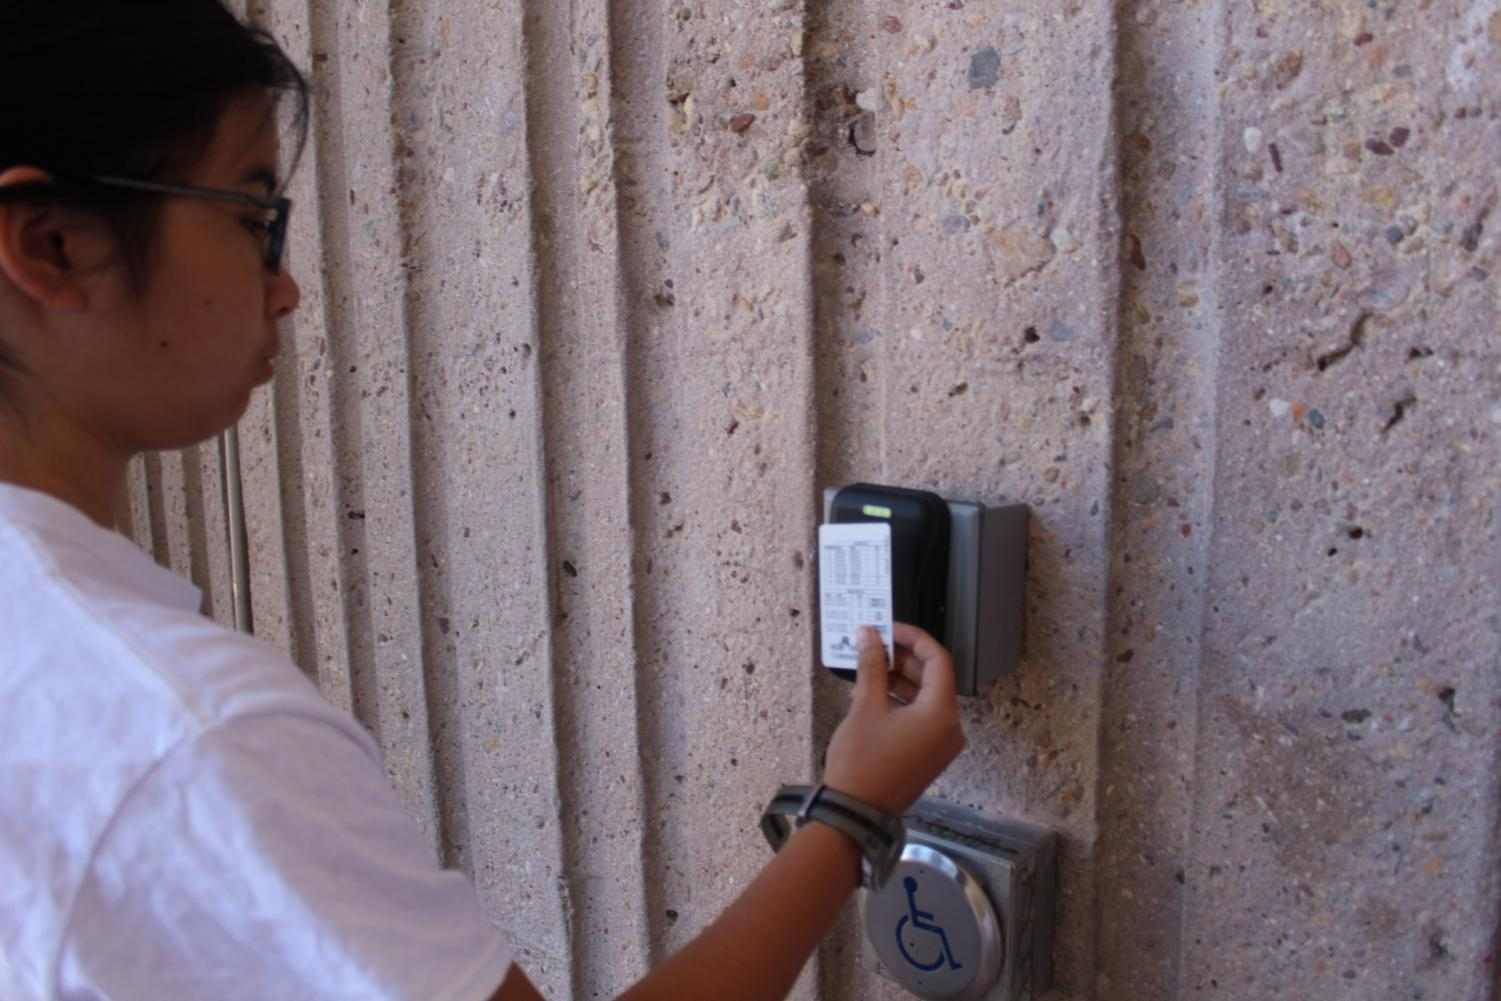 Phoebe Wu, freshman, scans her ID card at the bottom of the school to get inside during seventh period.